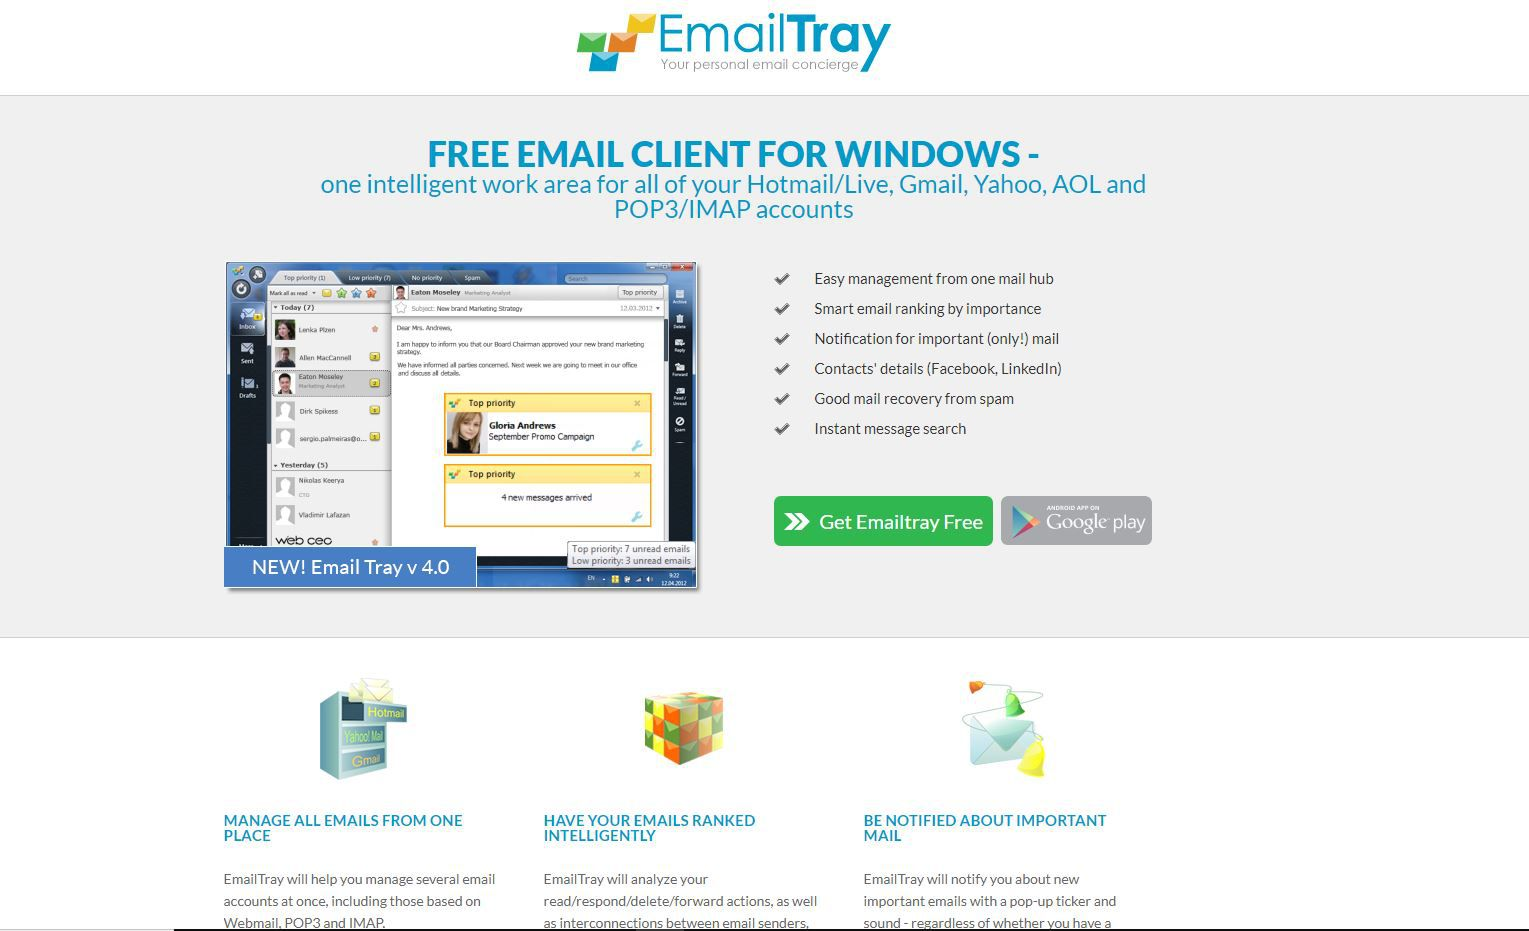 EmailTray website